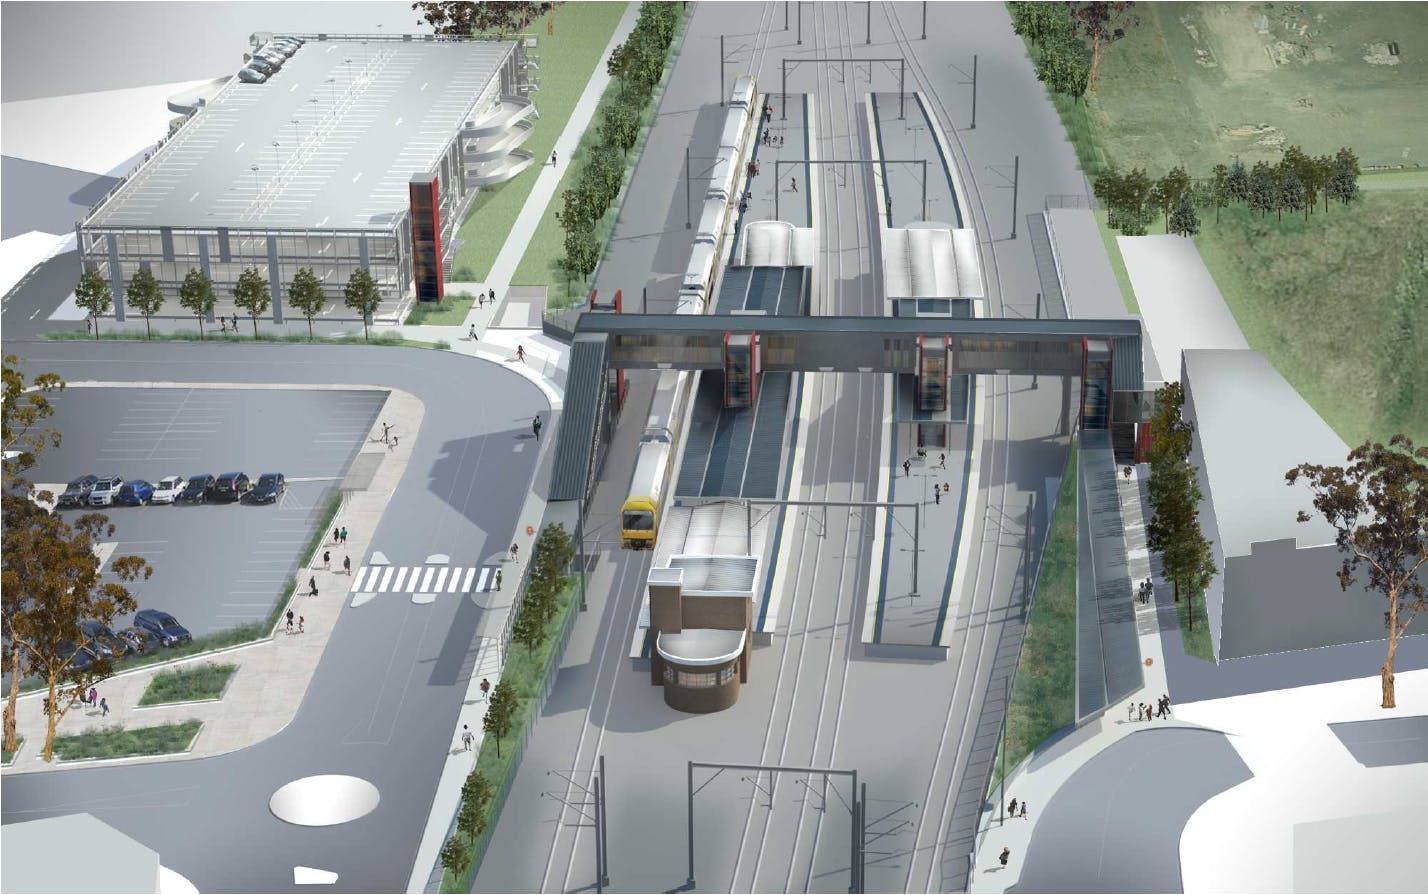 Artist's impression of the Rooty Hill Station Upgrade and Commuter Car Park, subject to detailed design